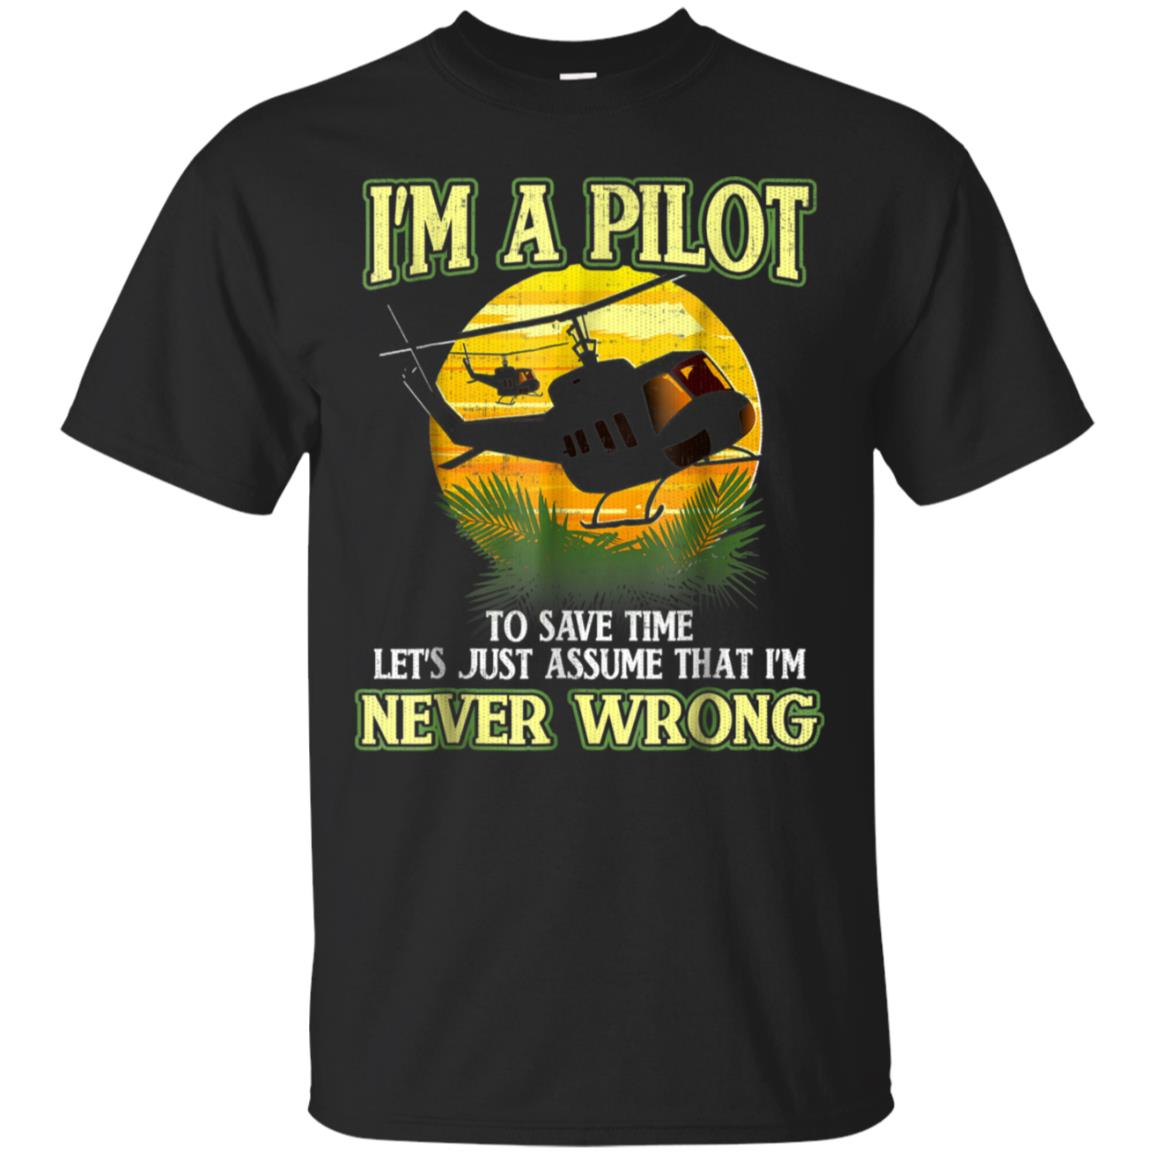 pilot shirt i'm a pilot to save time let's assume that gift 99promocode